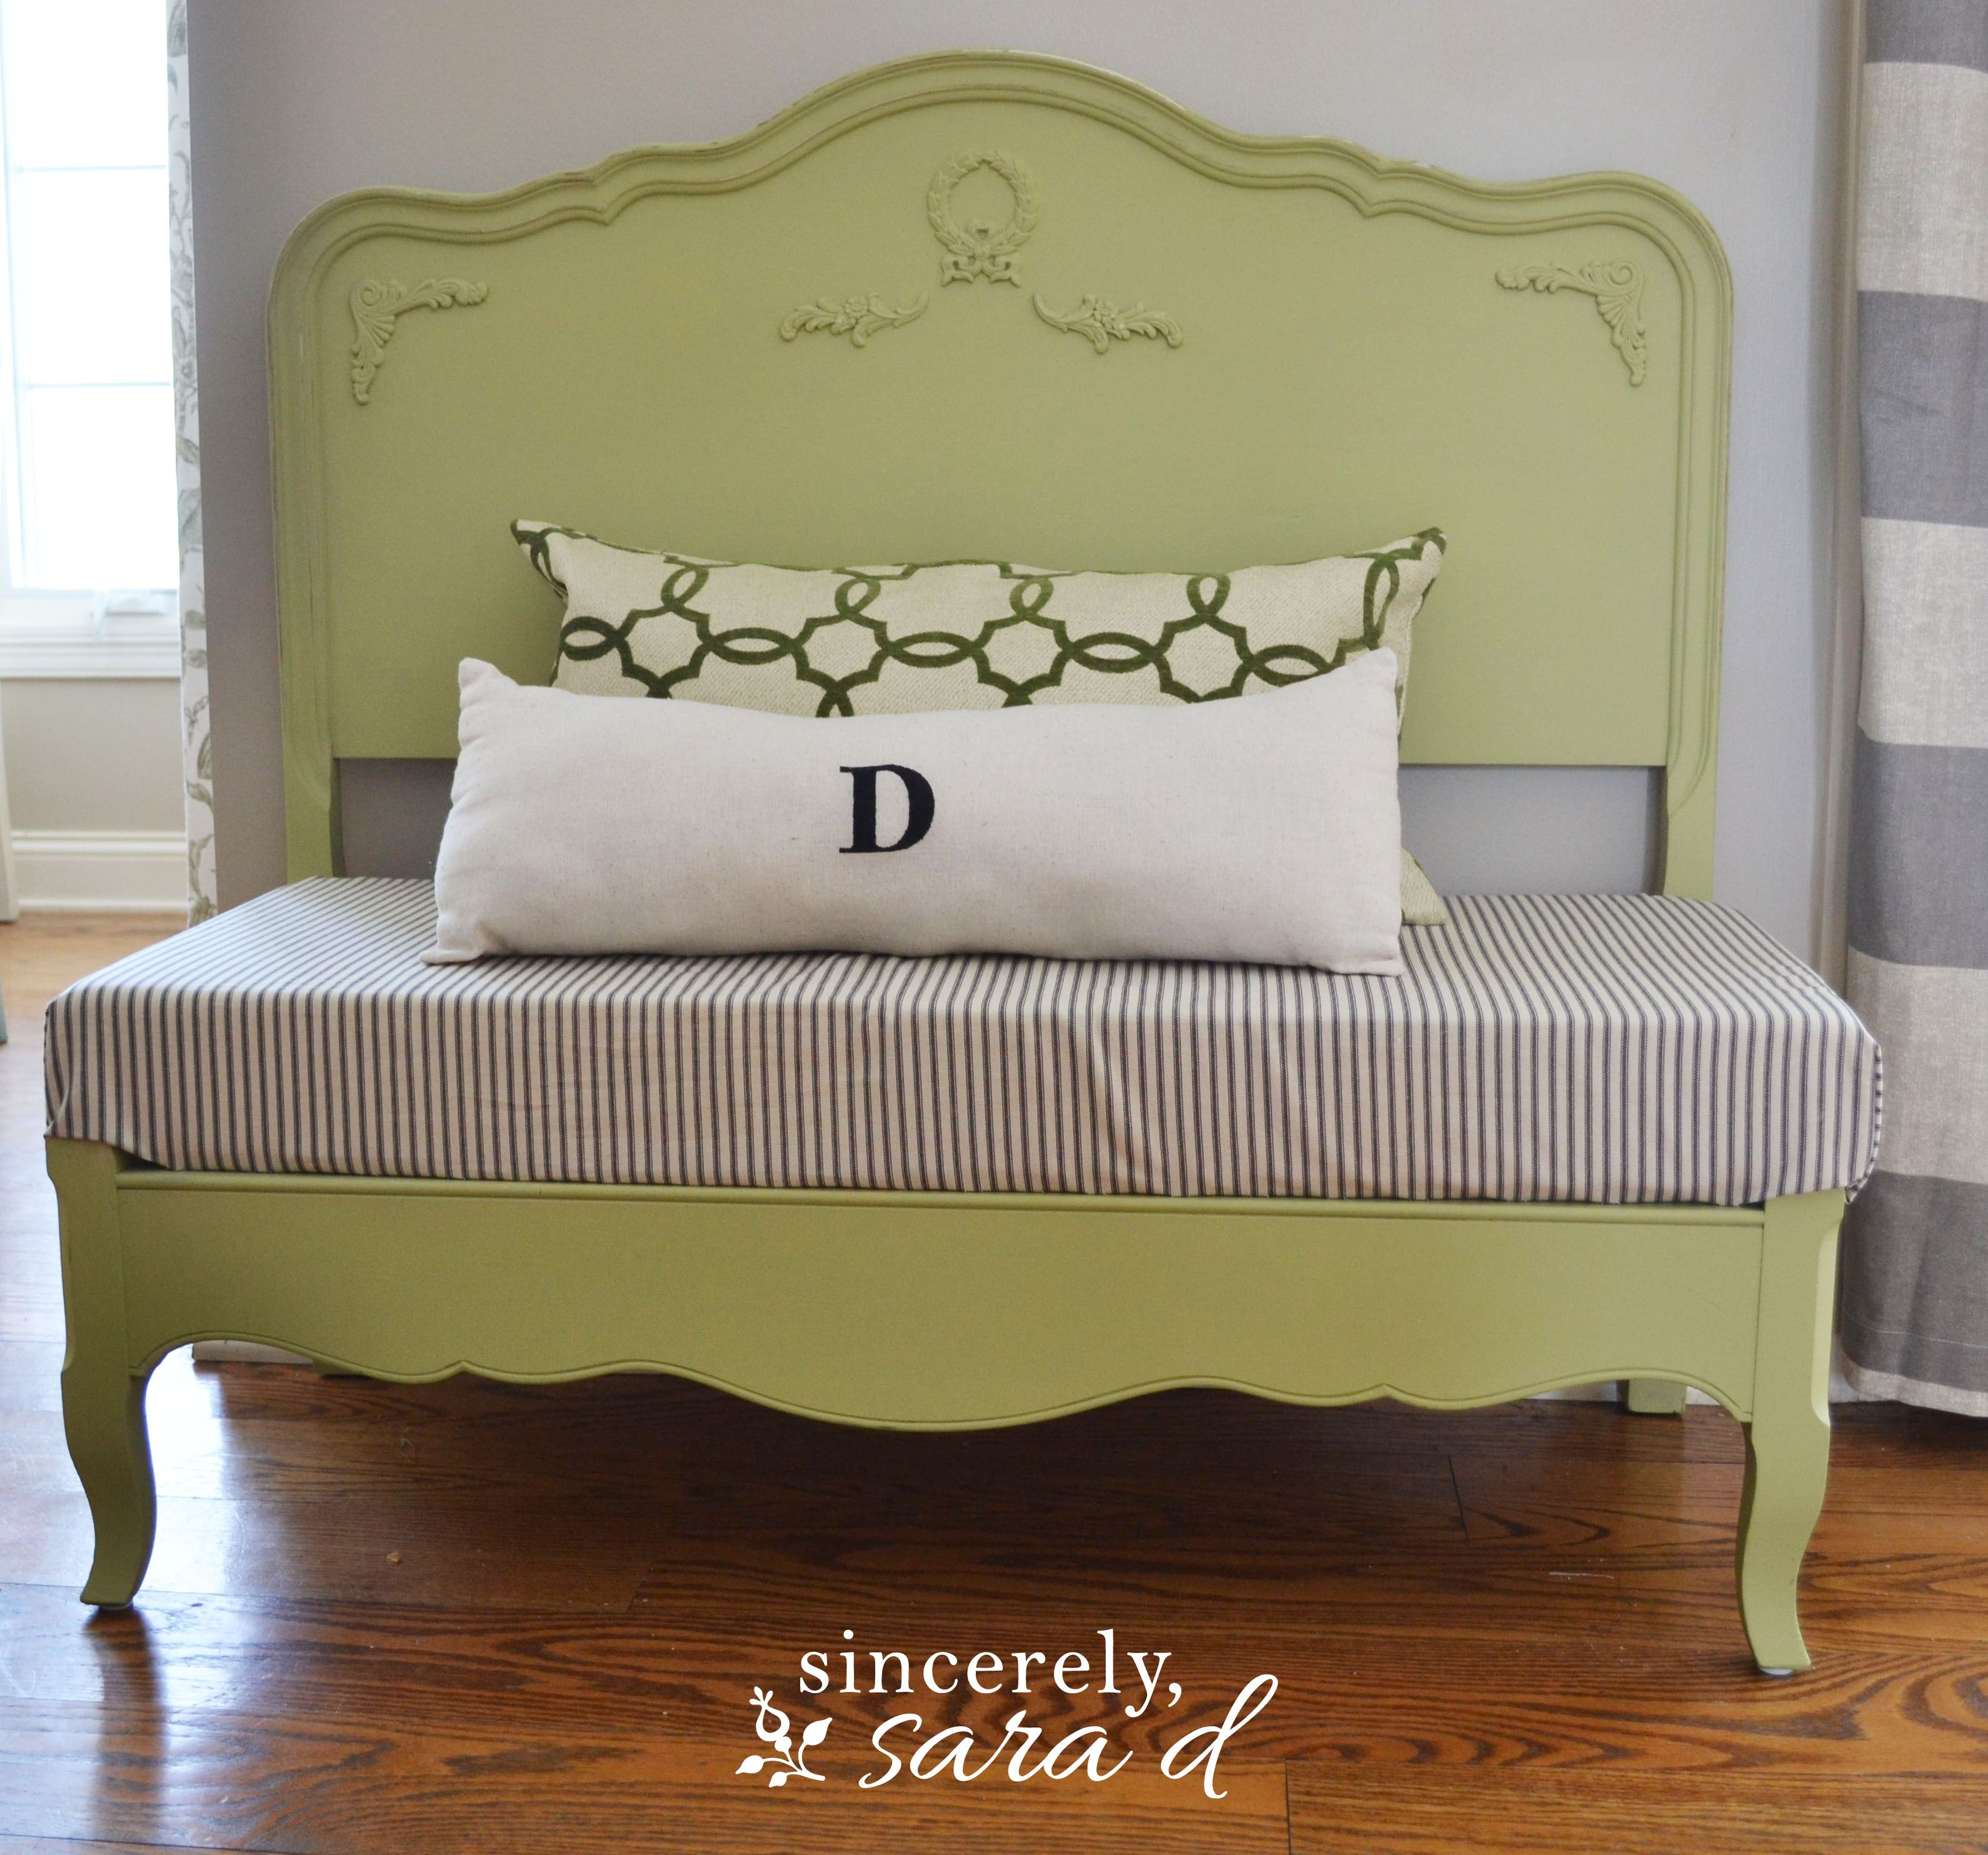 Upcoming Furniture Sales: Turn A Headboard Into A Bench